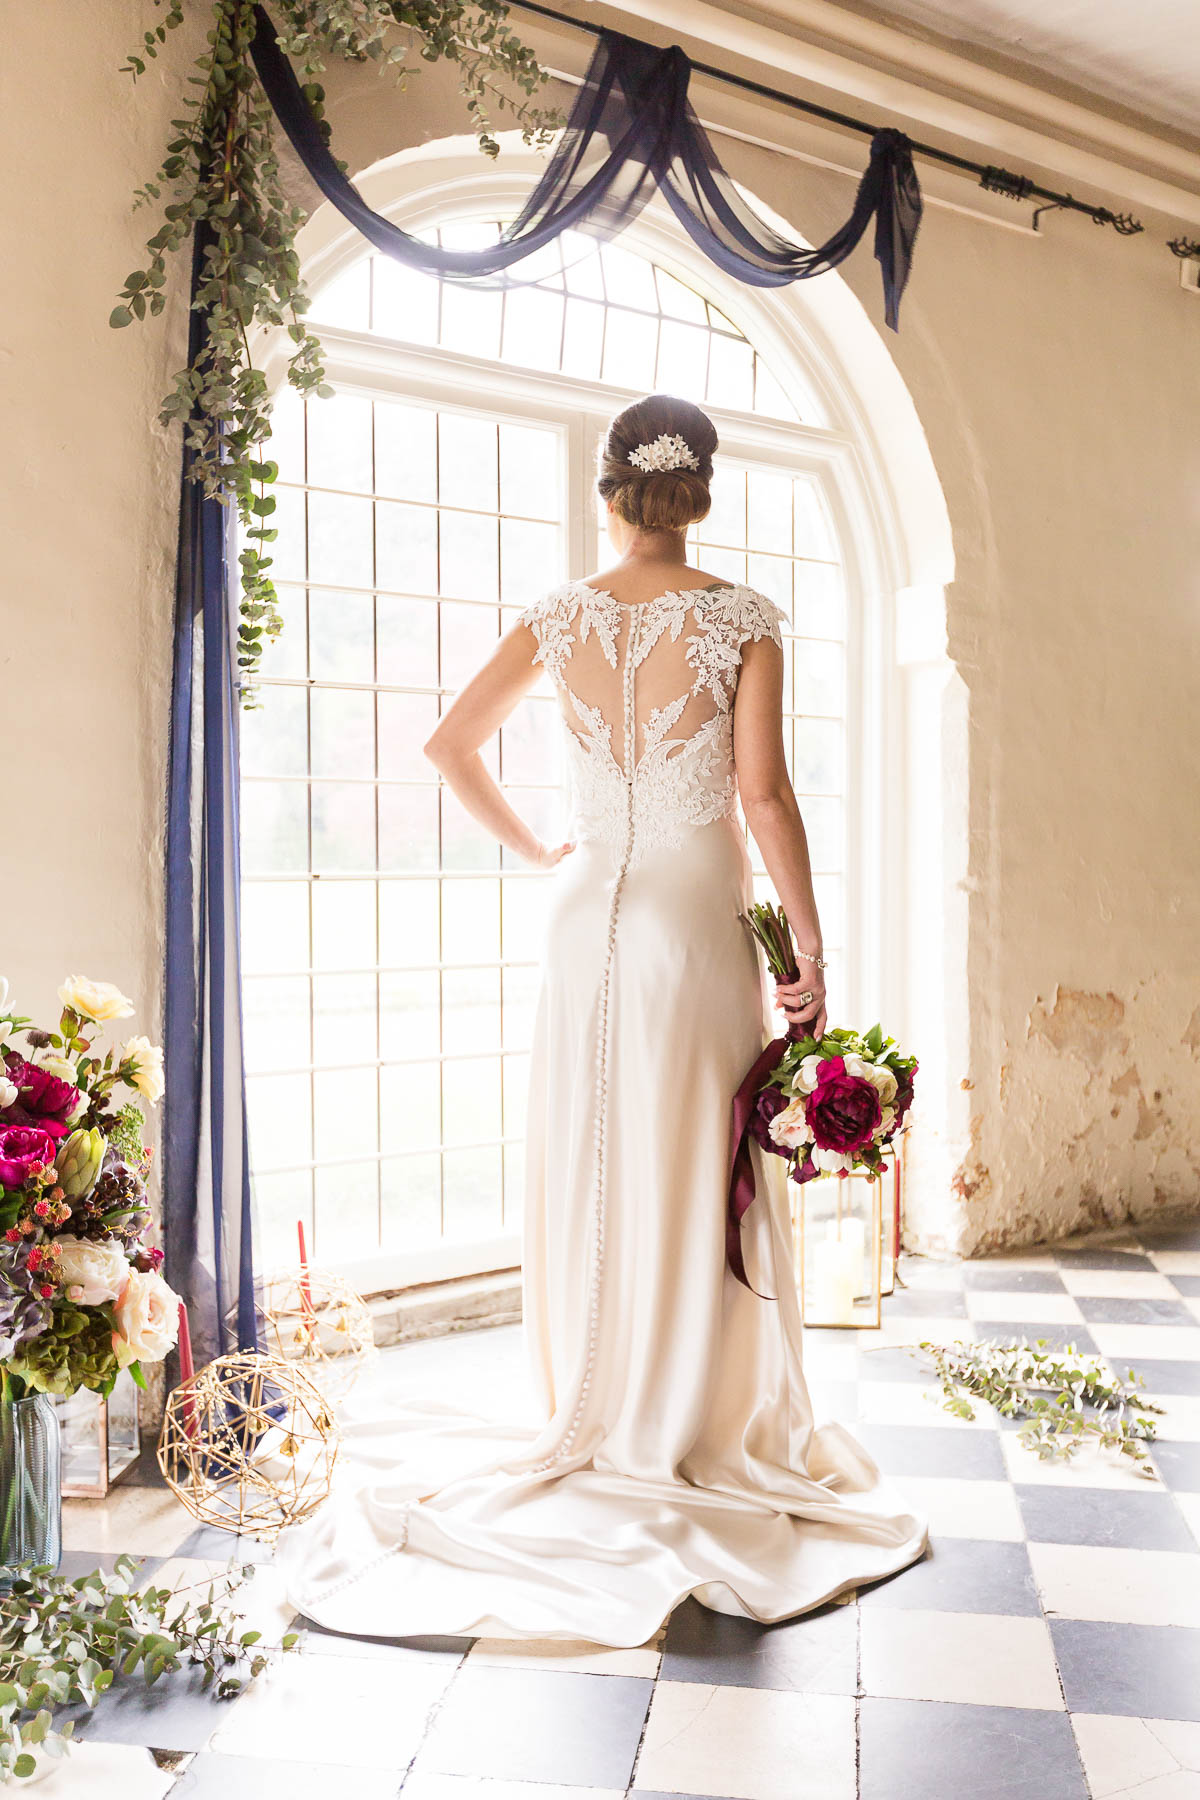 Red berry and navy wedding inspiration wedding dress and flowers